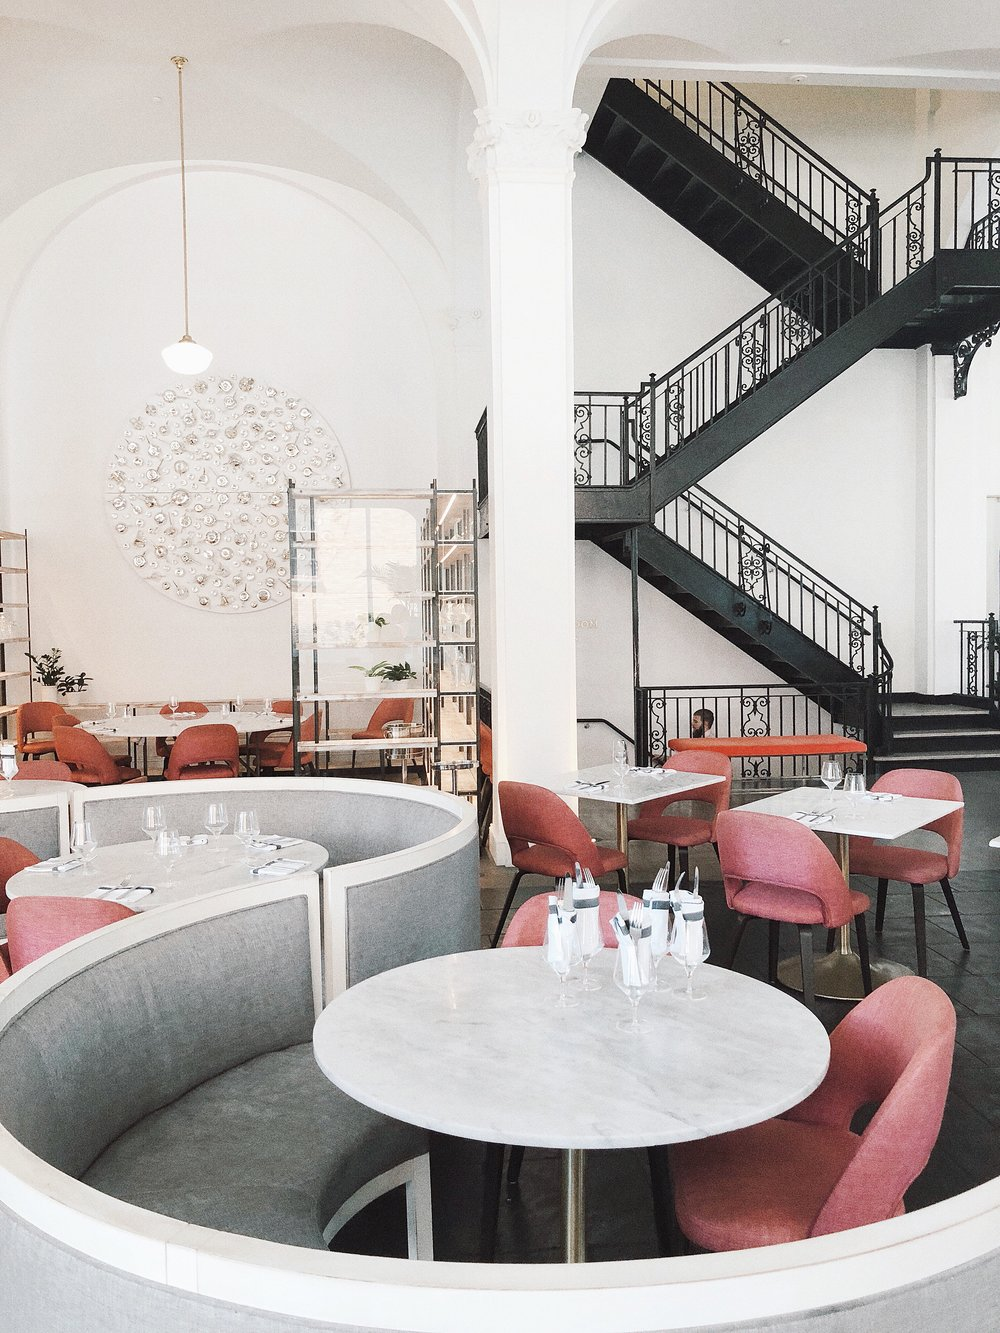 Caila Quinn Richmond Virginia Travel Guide Stay at the Quirk Hotel